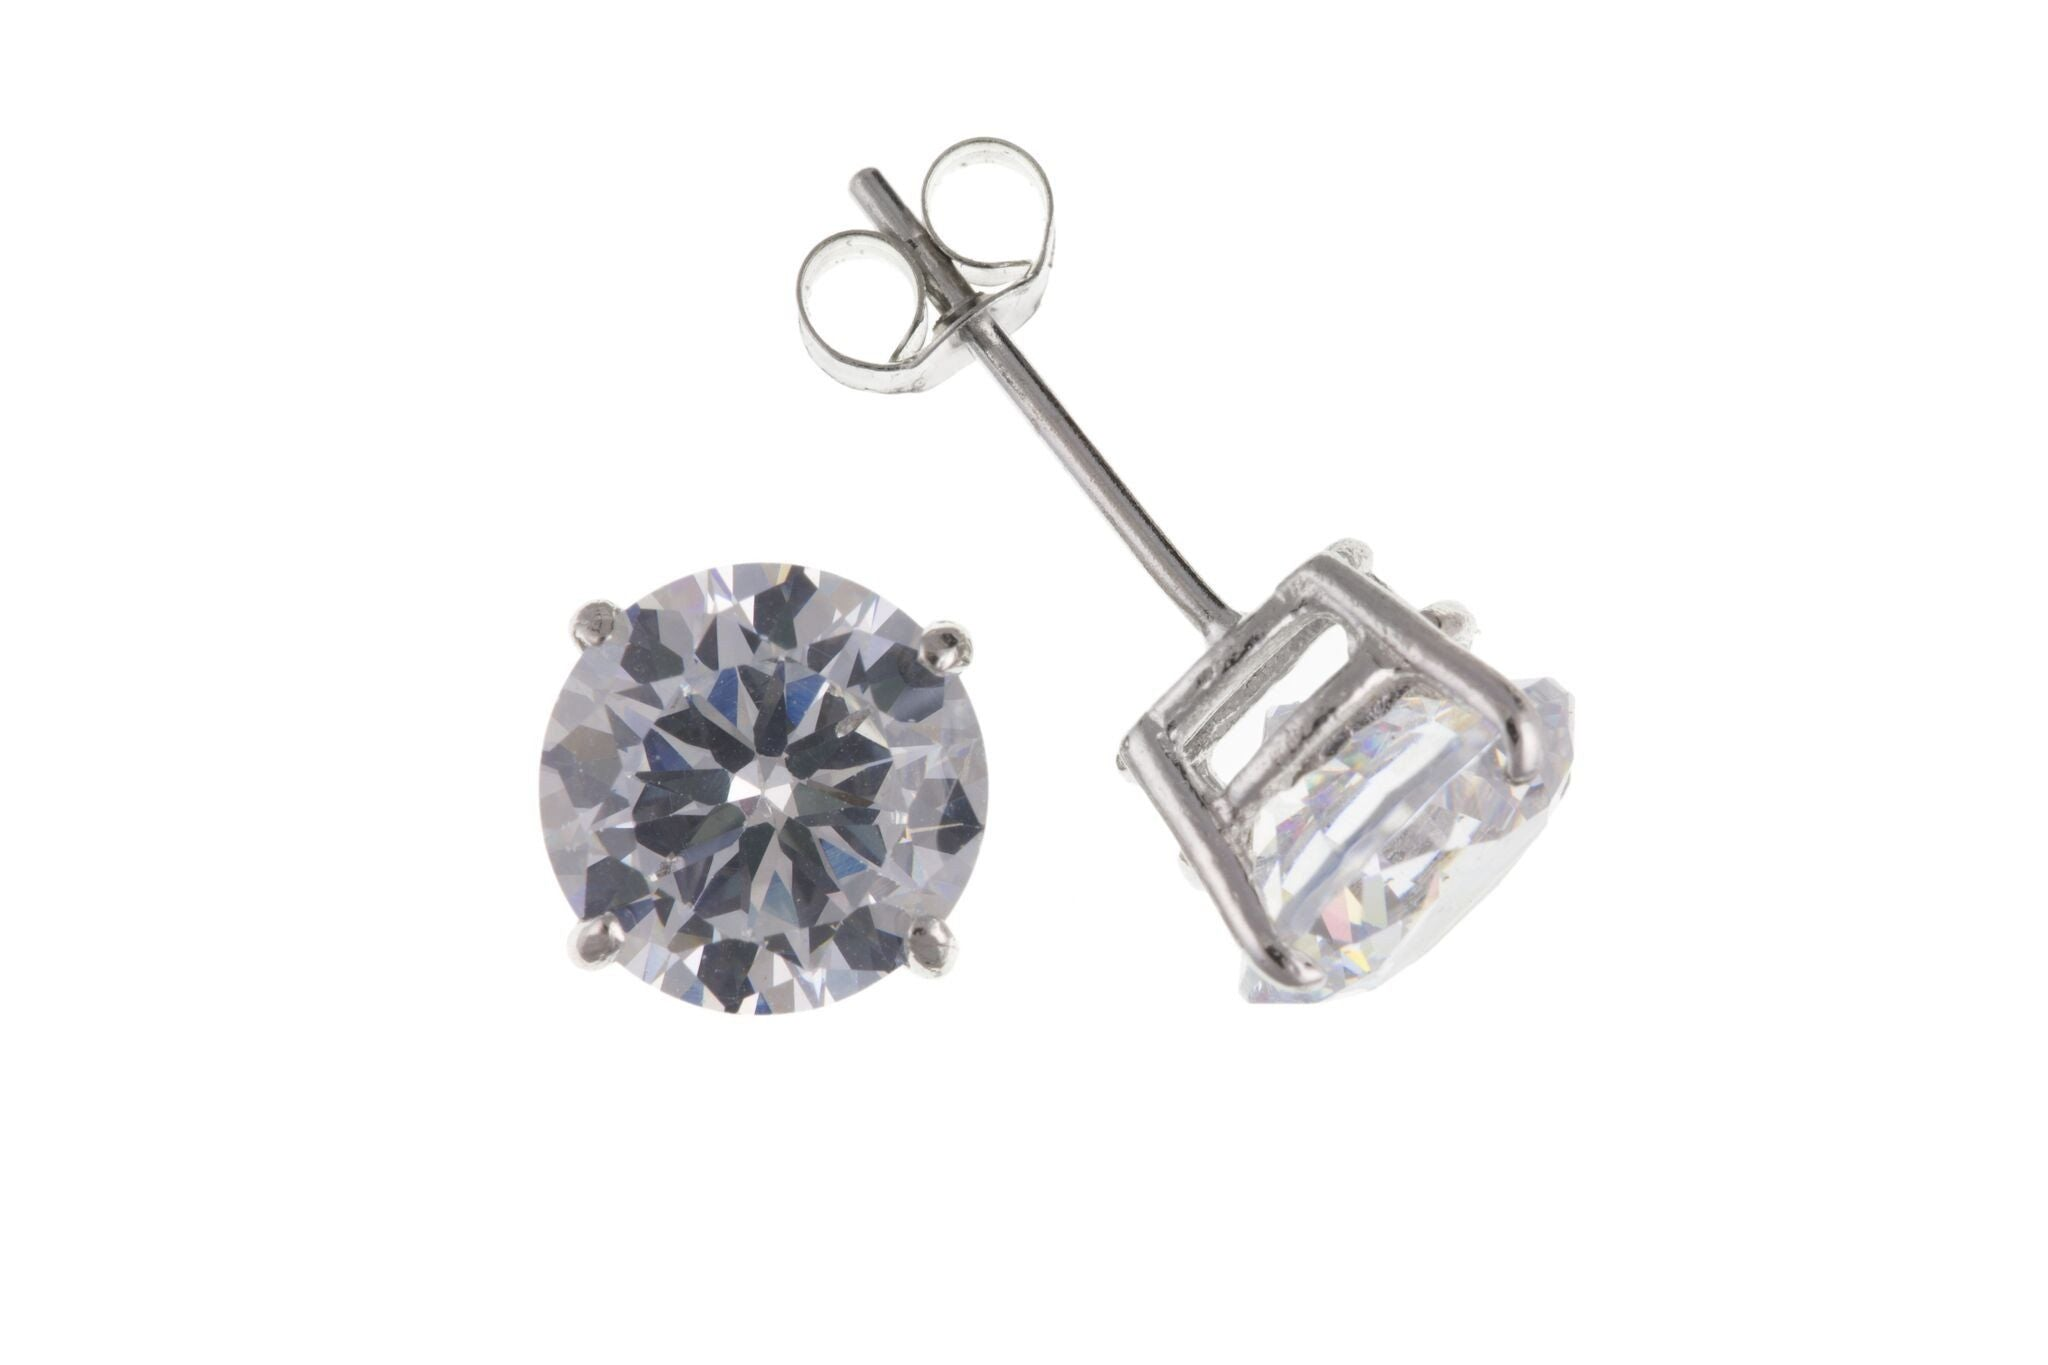 9ct White Gold CZ Stud Earrings